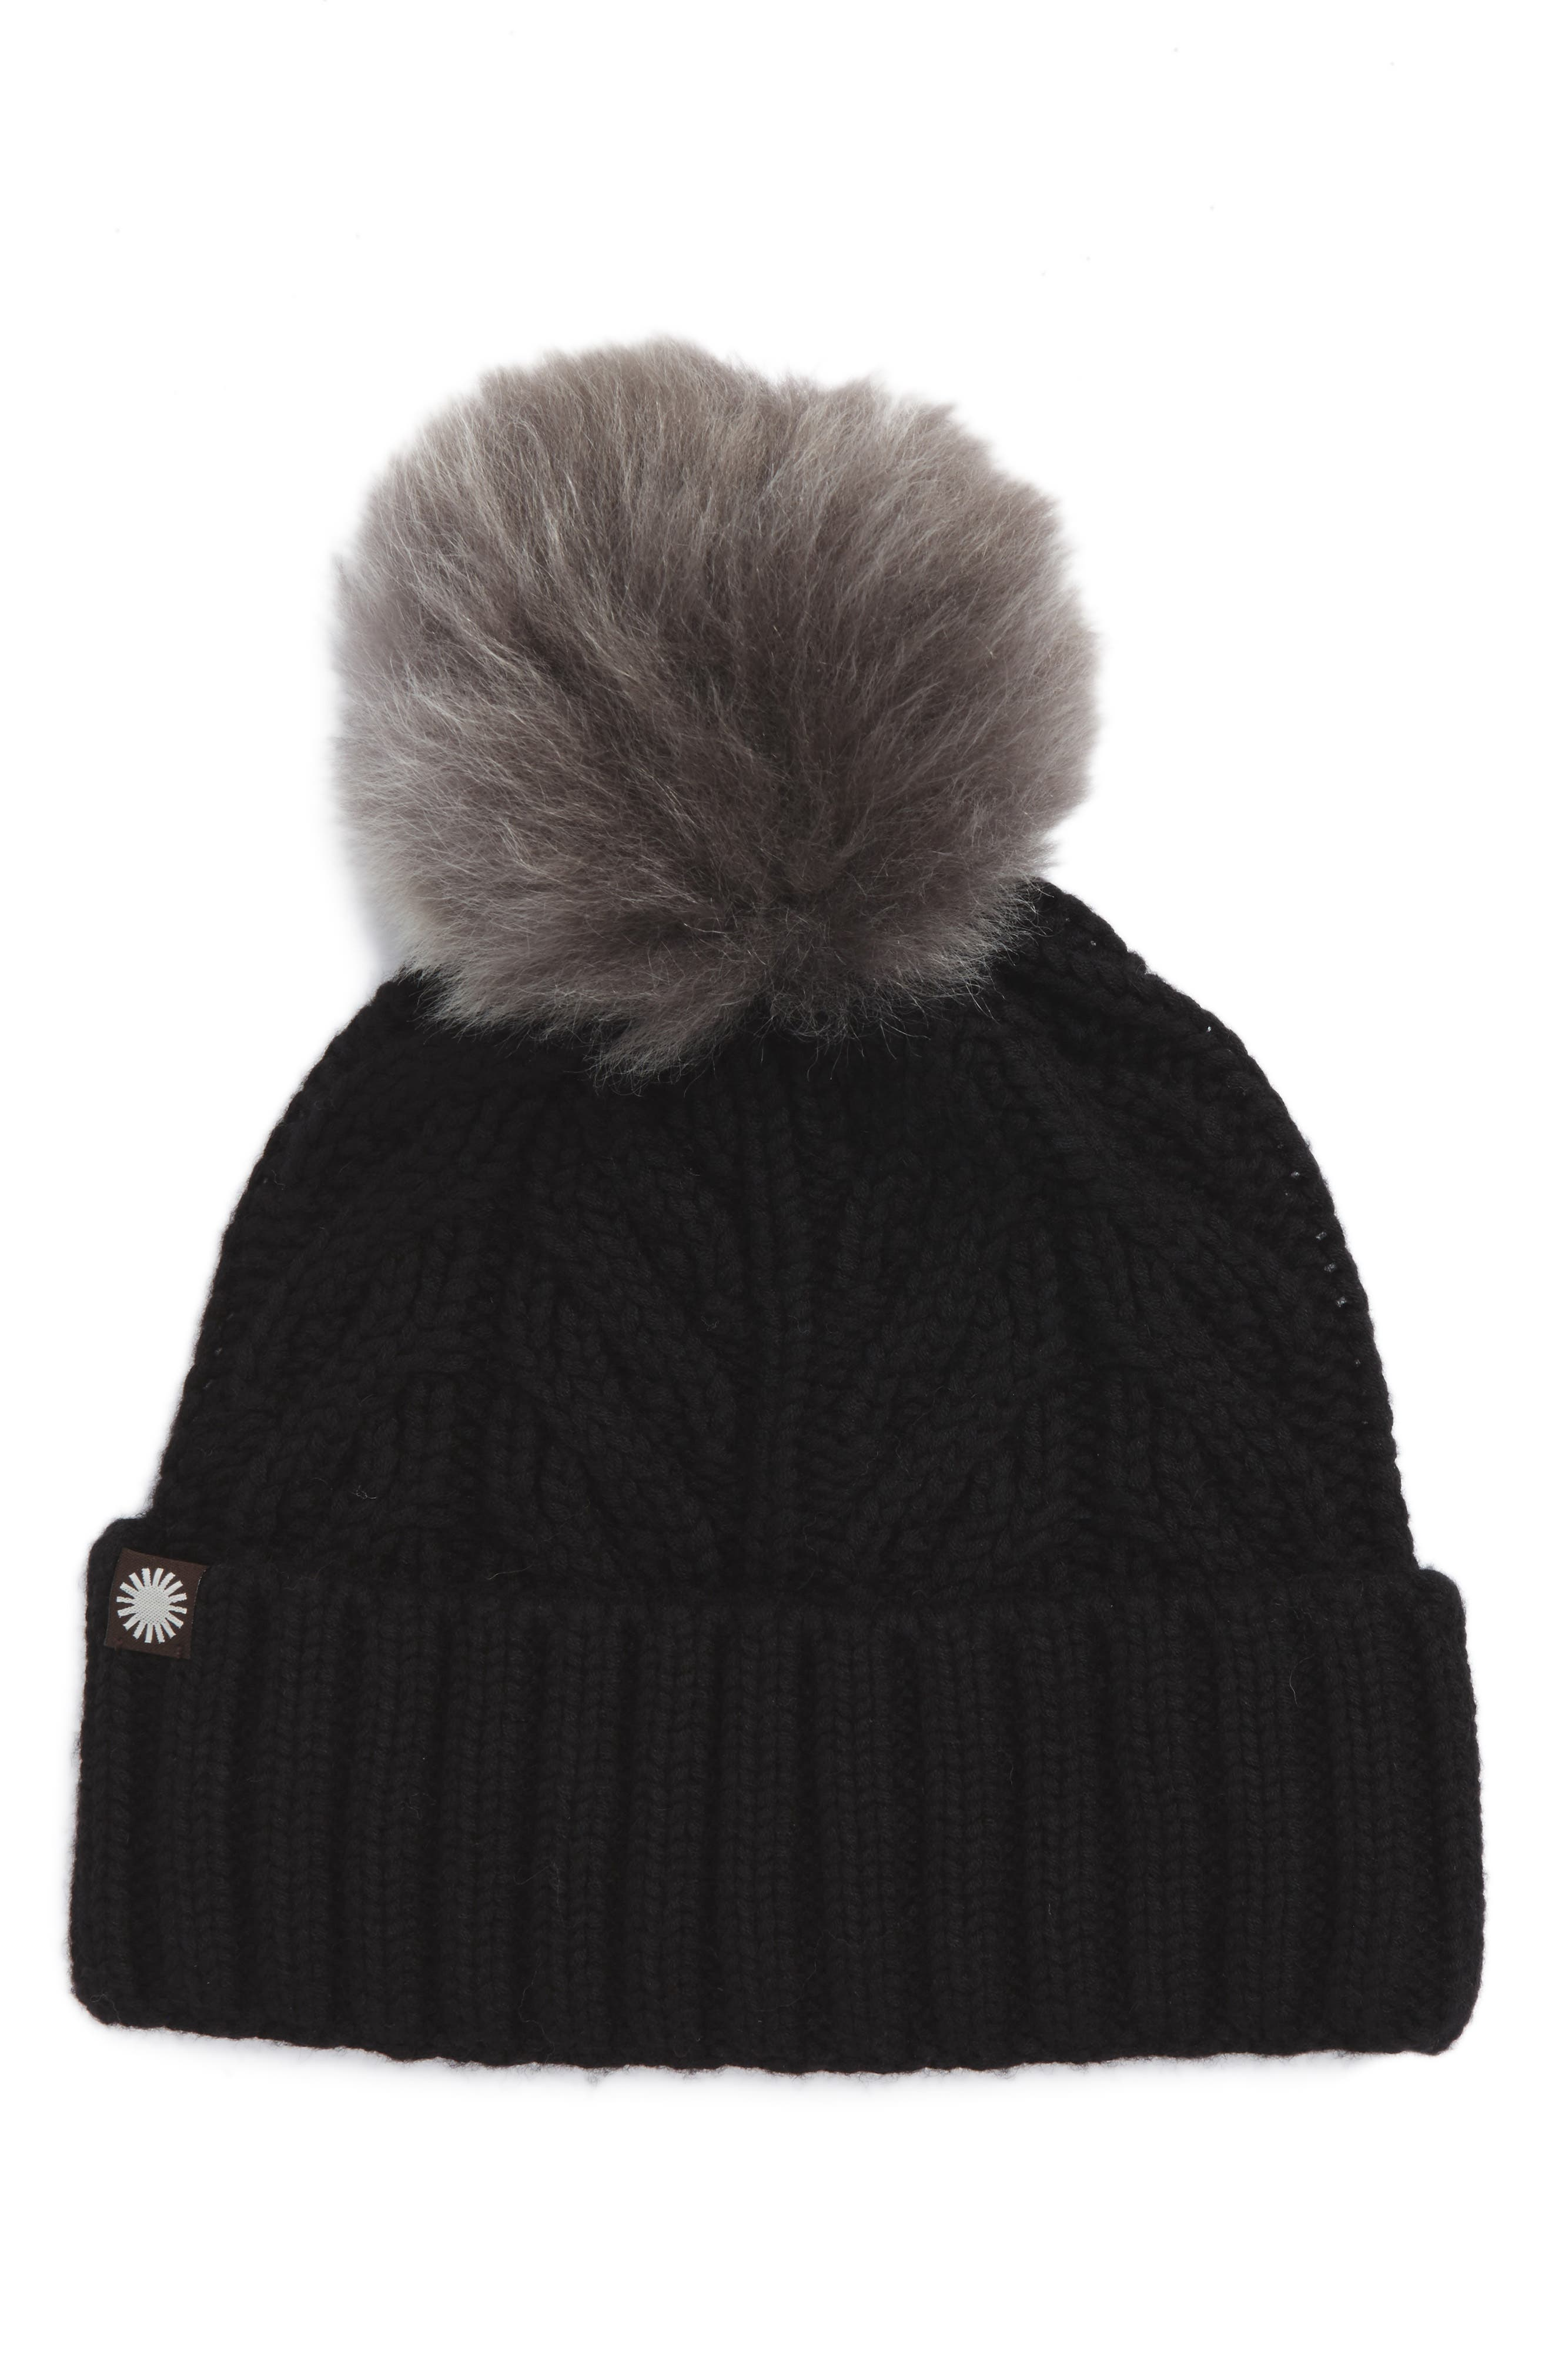 UGG<sup>®</sup> Cable Knit Cuff Hat with Genuine Shearling Pom,                         Main,                         color, 003